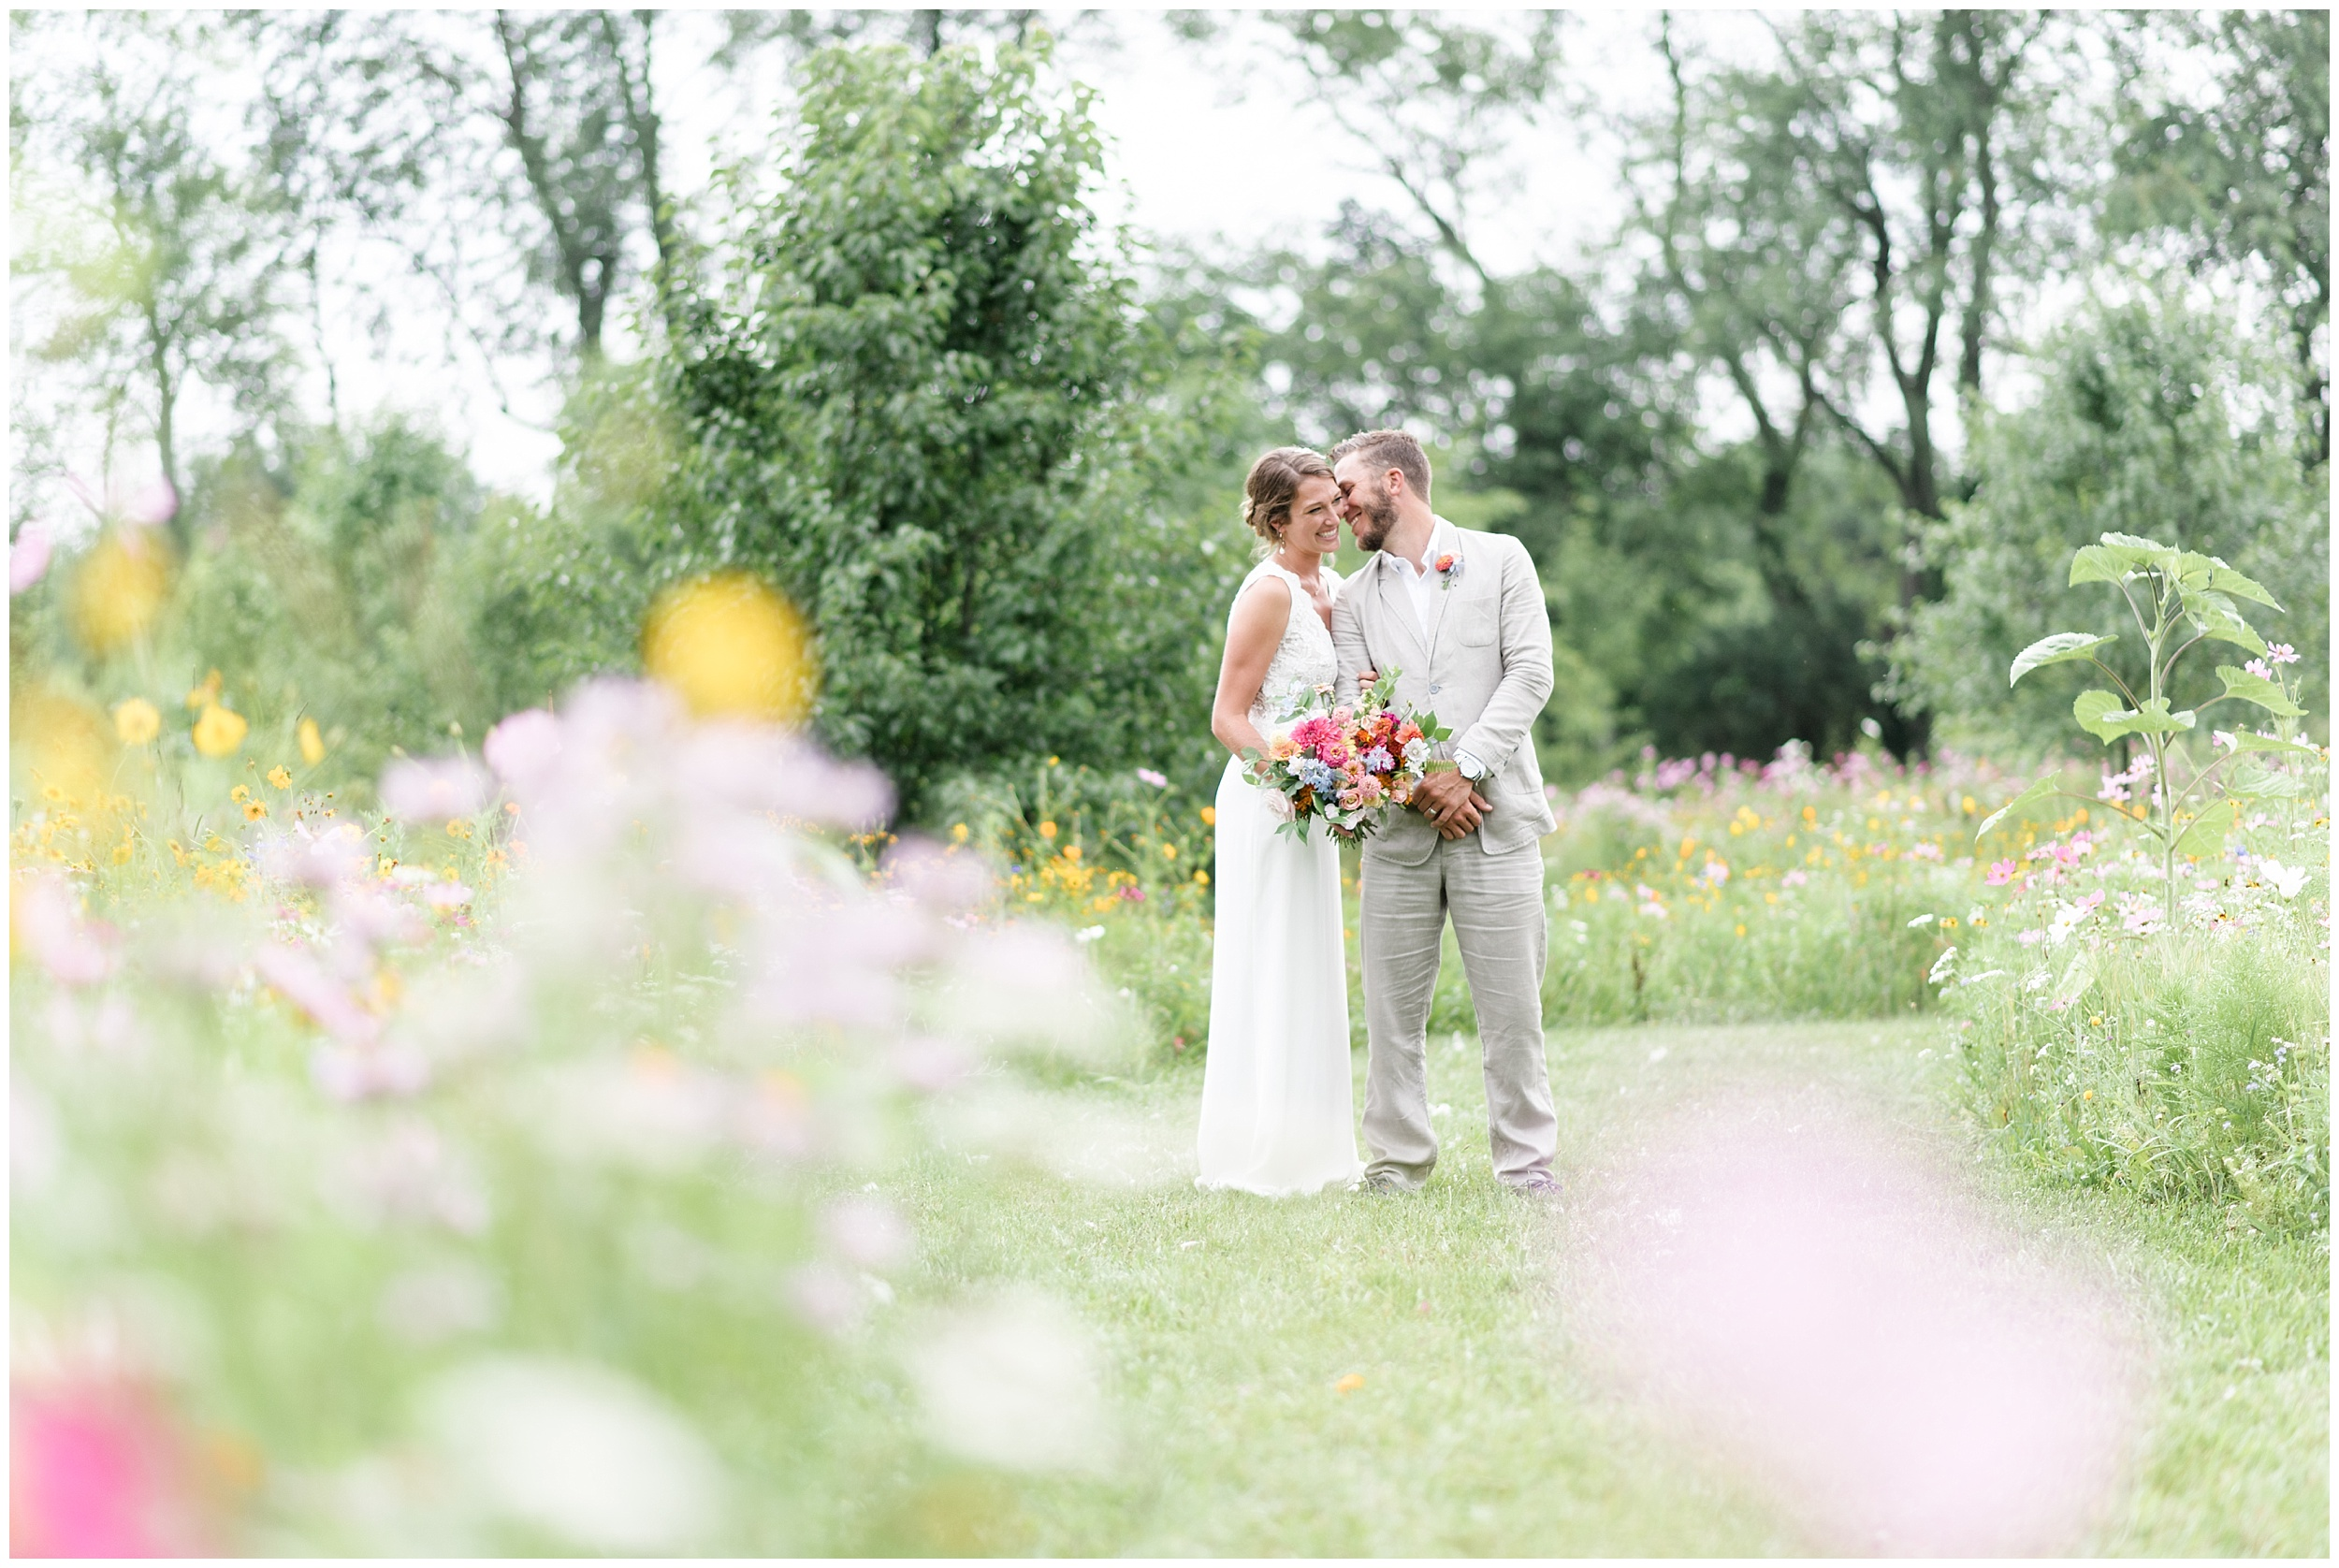 Whimsical-Ethereal-July-Kalamazoo-Wedding-Bright-Airy-Documentary-Milwaukee-Photographer_0071.jpg